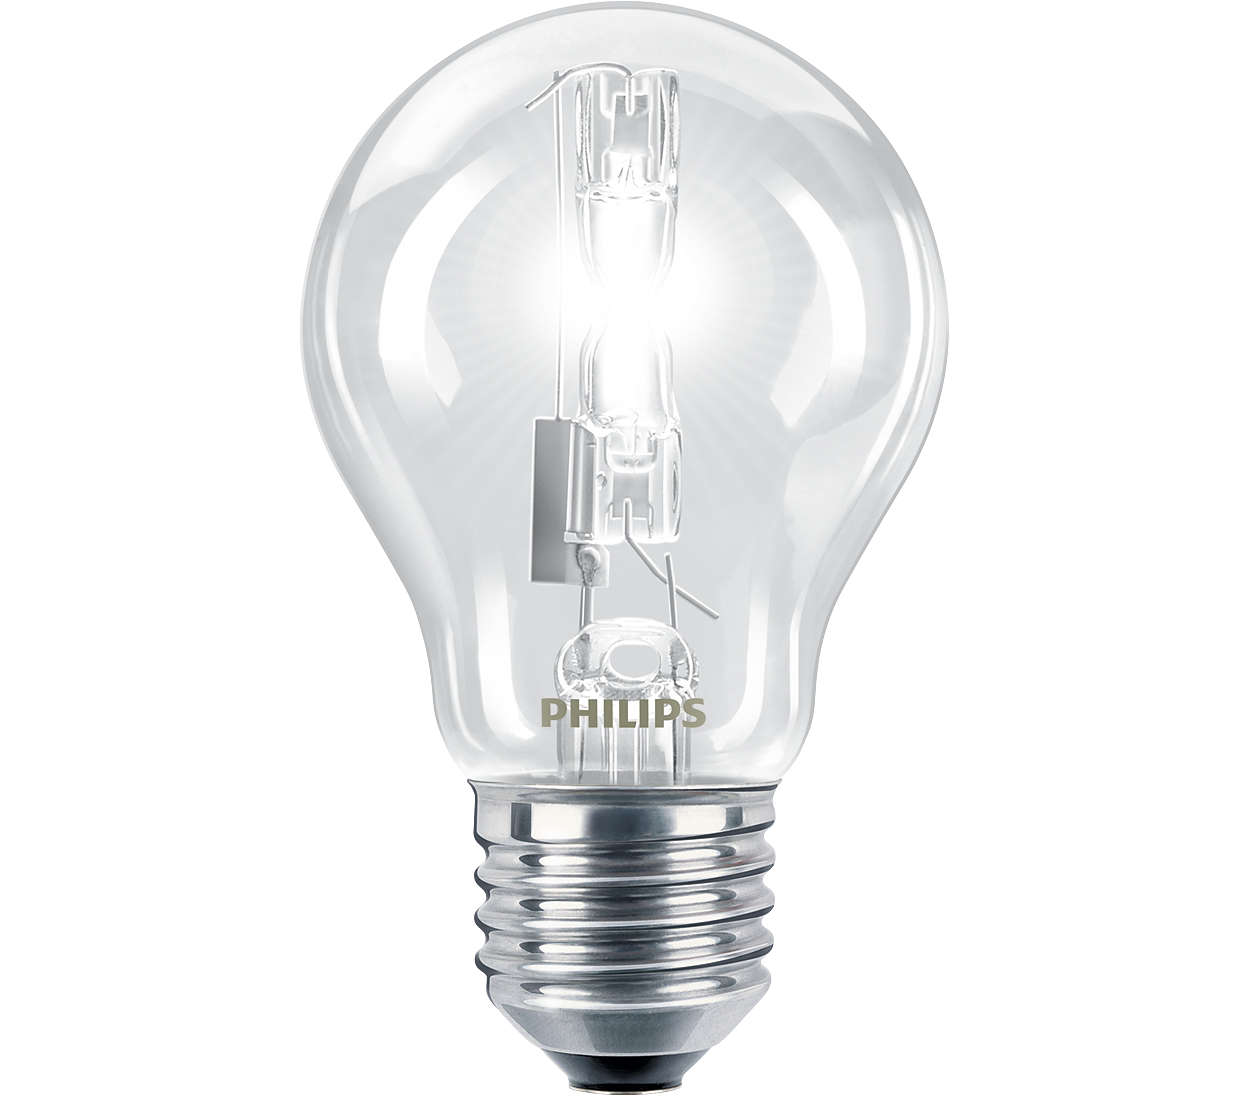 The new classic light bulb